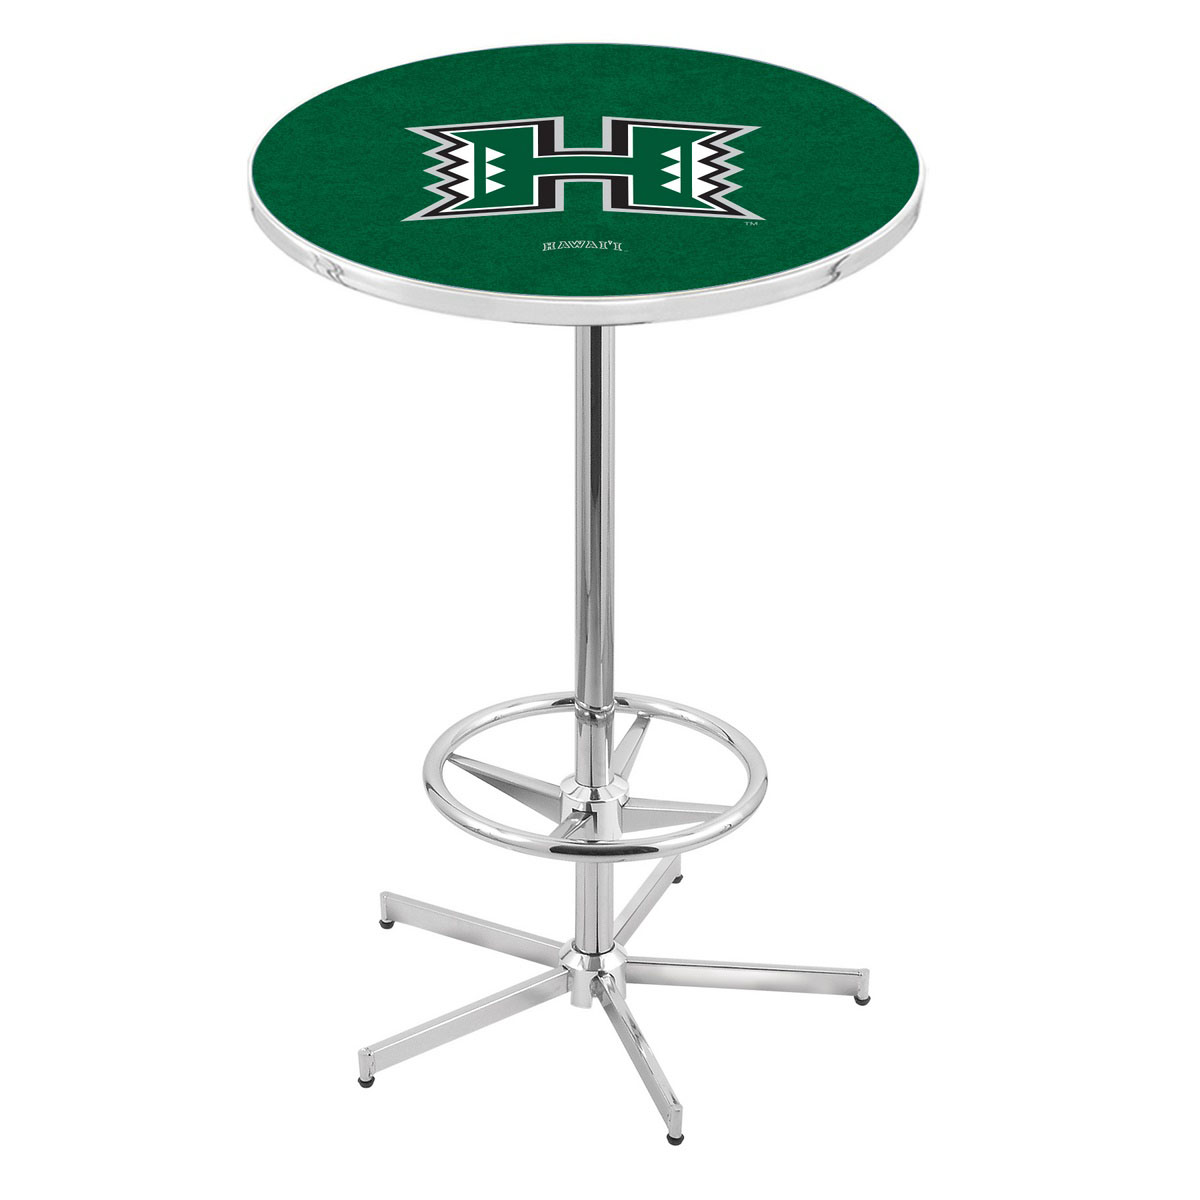 Learn more about Chrome Hawaii Pub Table Product Photo